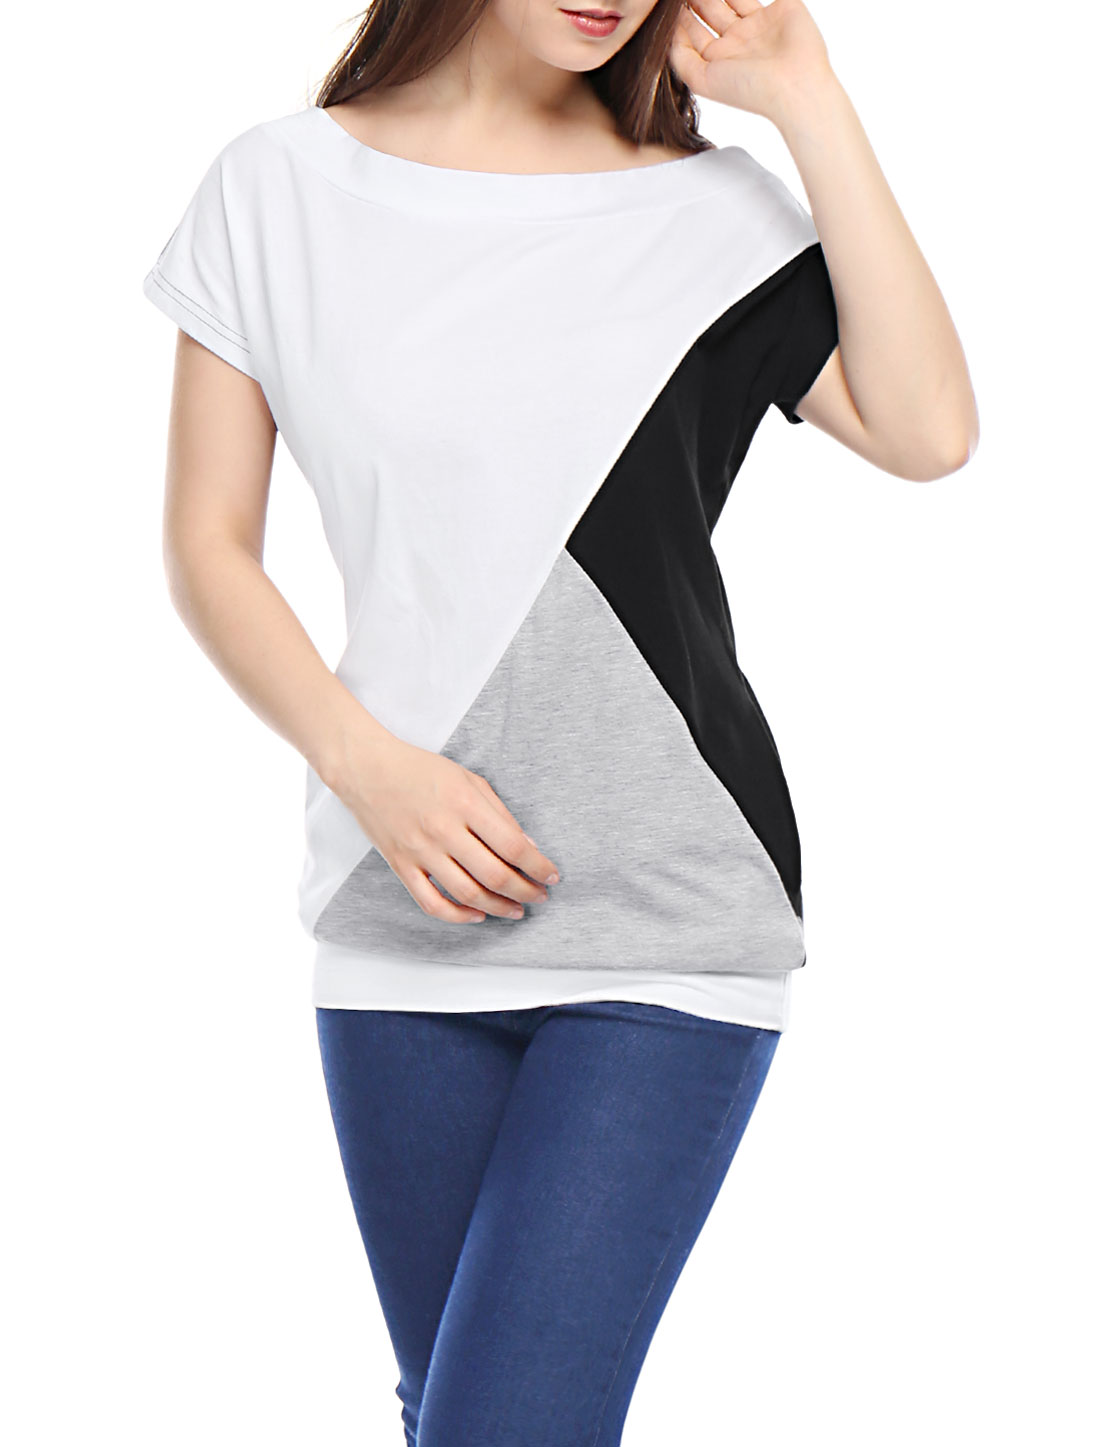 Boat Neck Color Block Black White Gray Tunic Shirt XS for Women